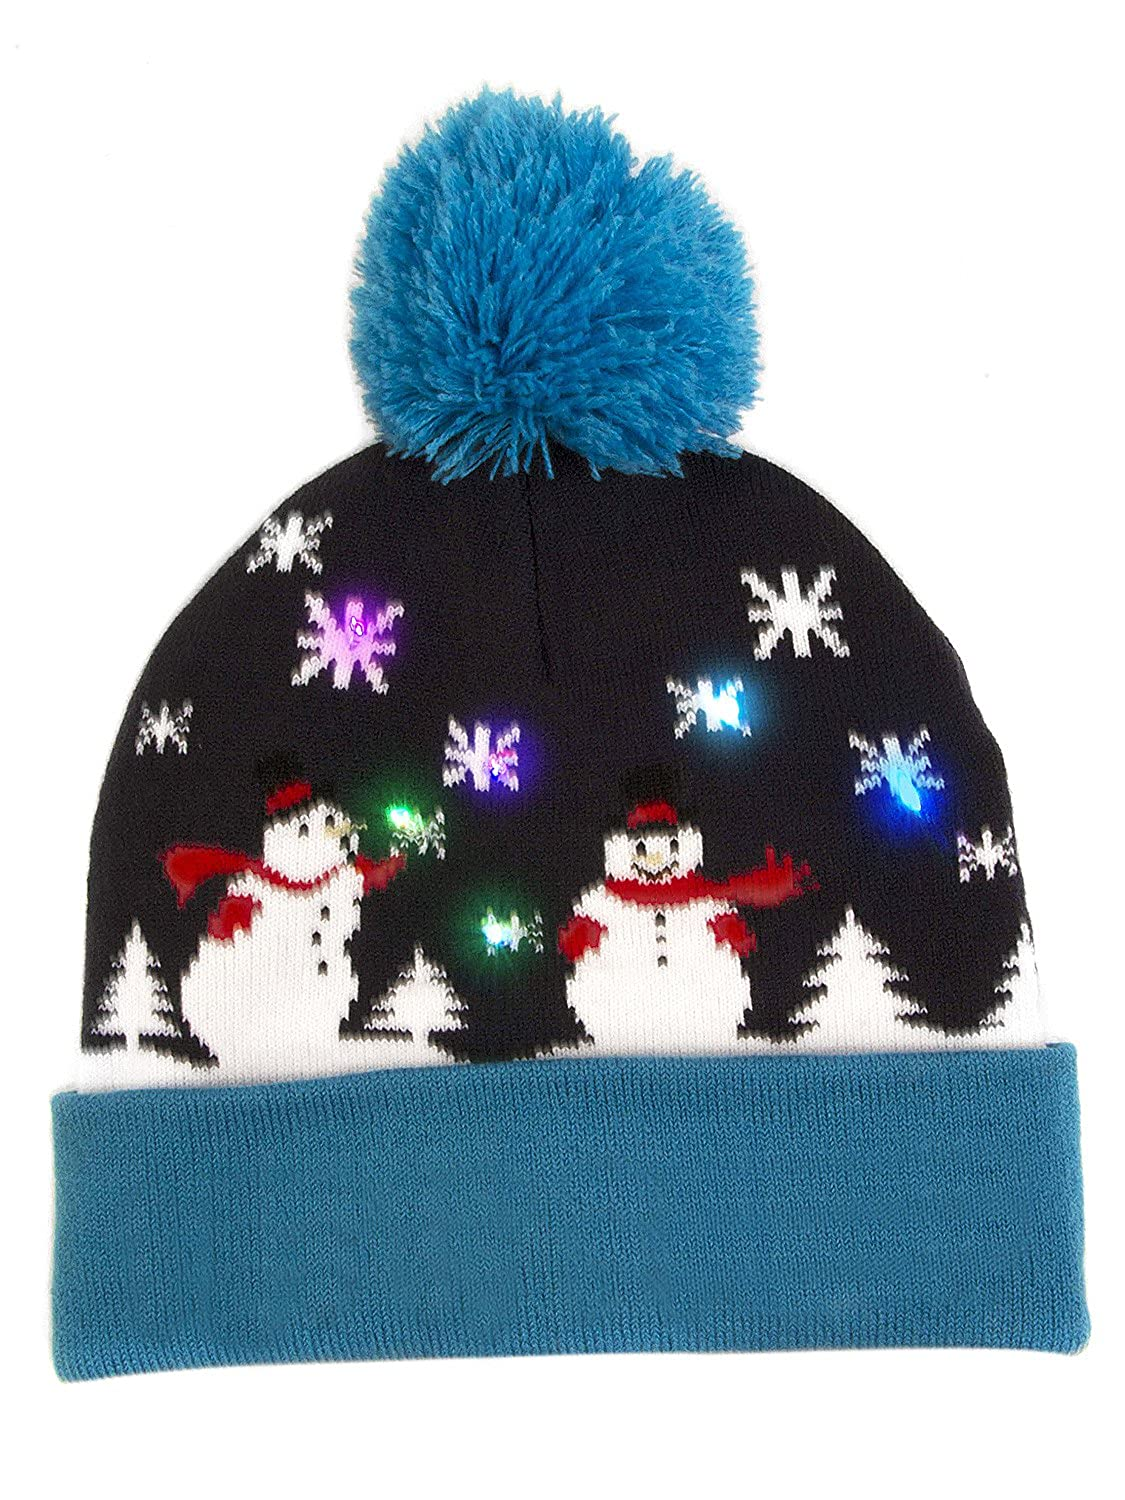 eb2c9931386 Choies Cute Light-up Knitted Hats Winter Child Christmas Beanie Hat at  Amazon Women s Clothing store